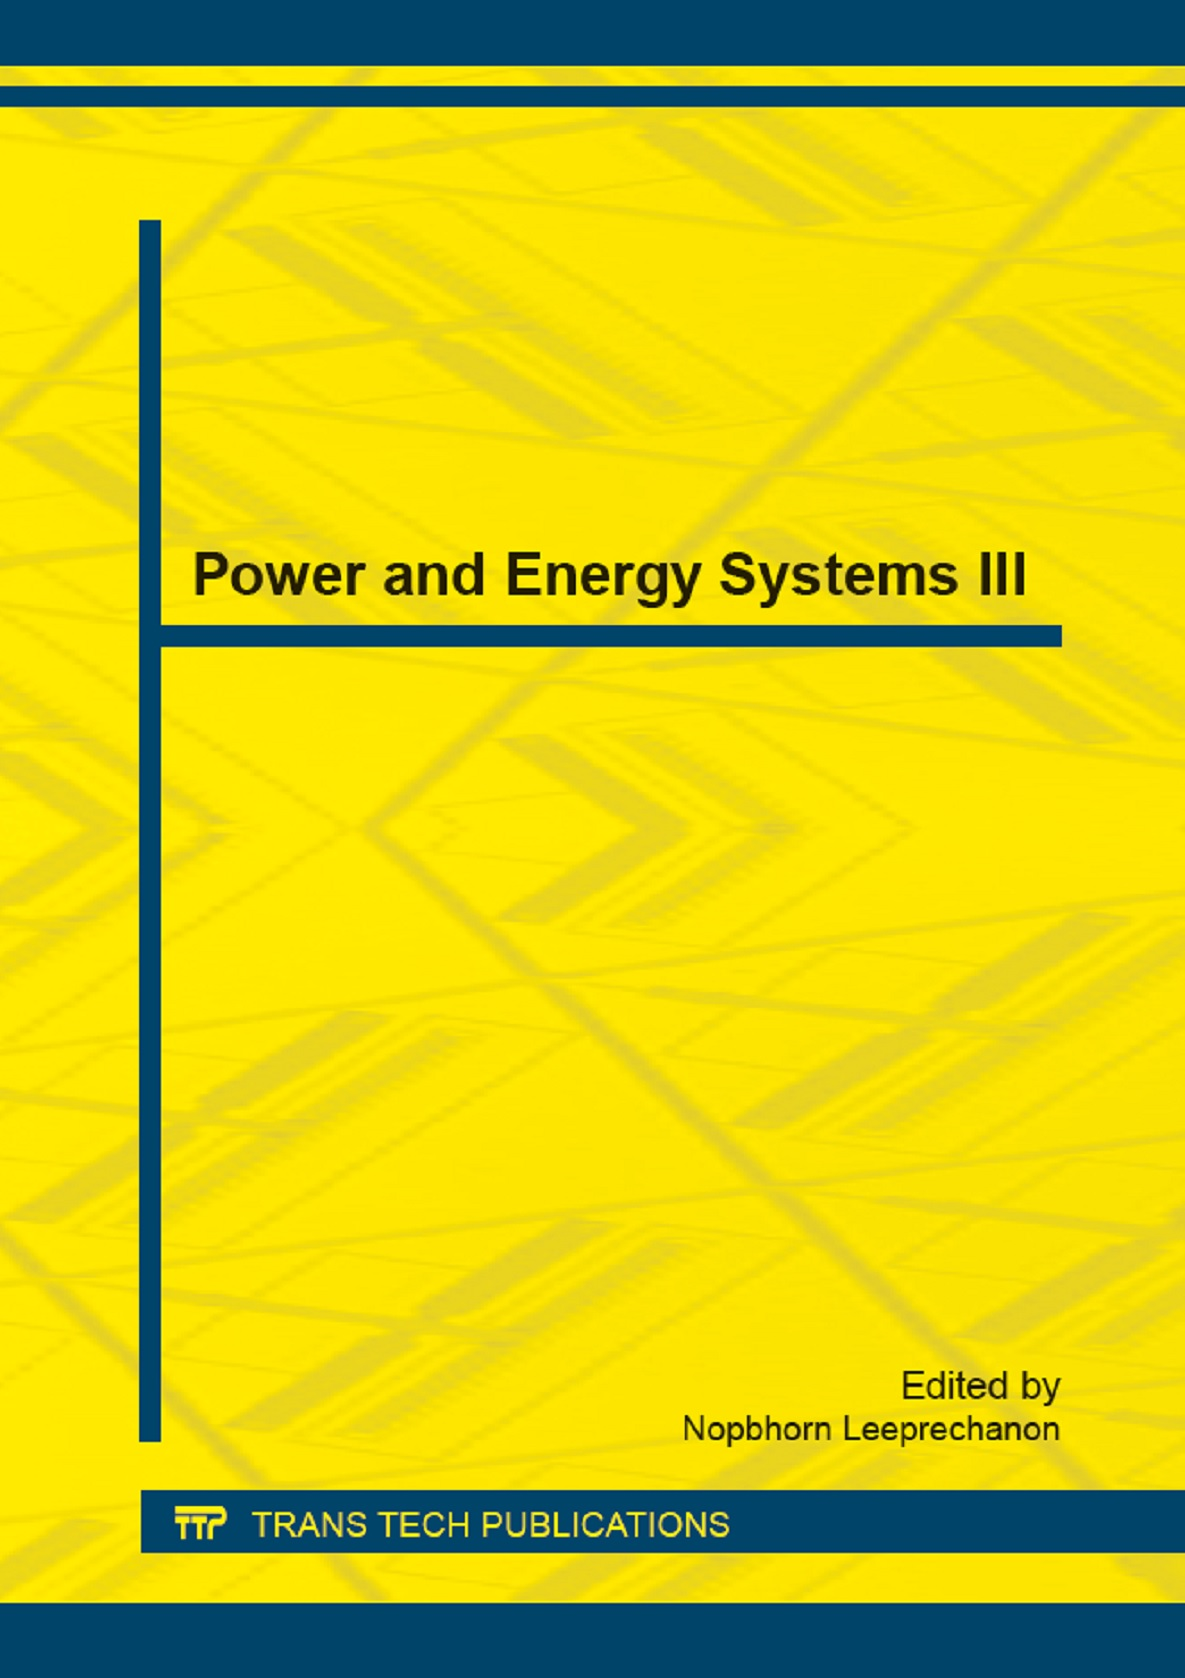 Power and Energy Systems III